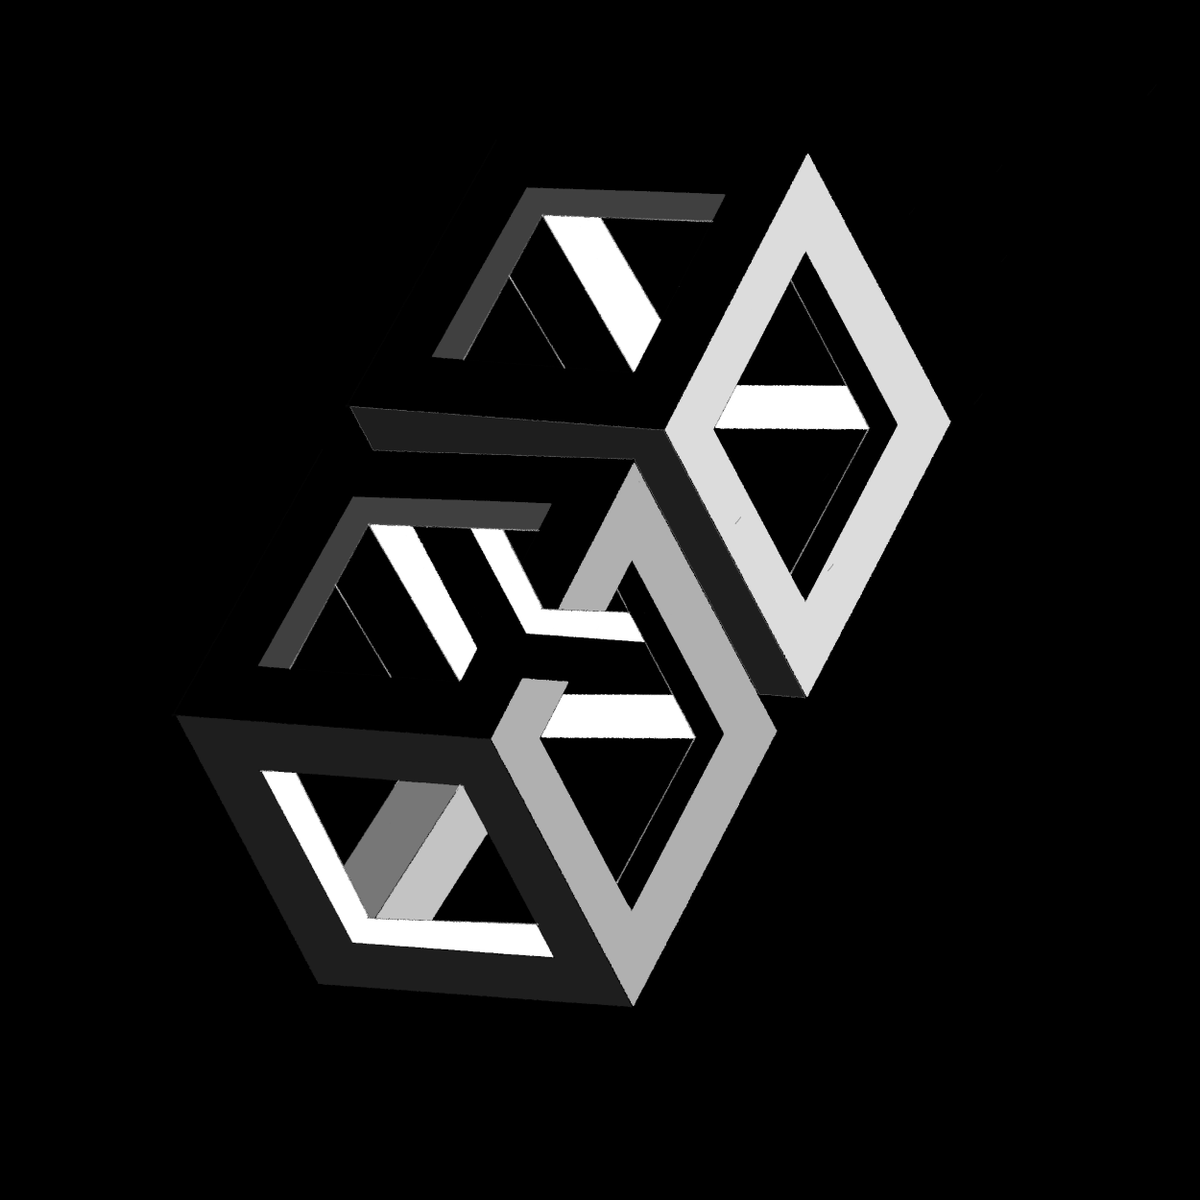 hai!! , sup ppls . i tried to draw some sort of illusion and tried using some geometry , idk if it turned out good enough , if you can , drop me a follow , and pls retweet and like !!😆 #procreateart  #artistsontwitter